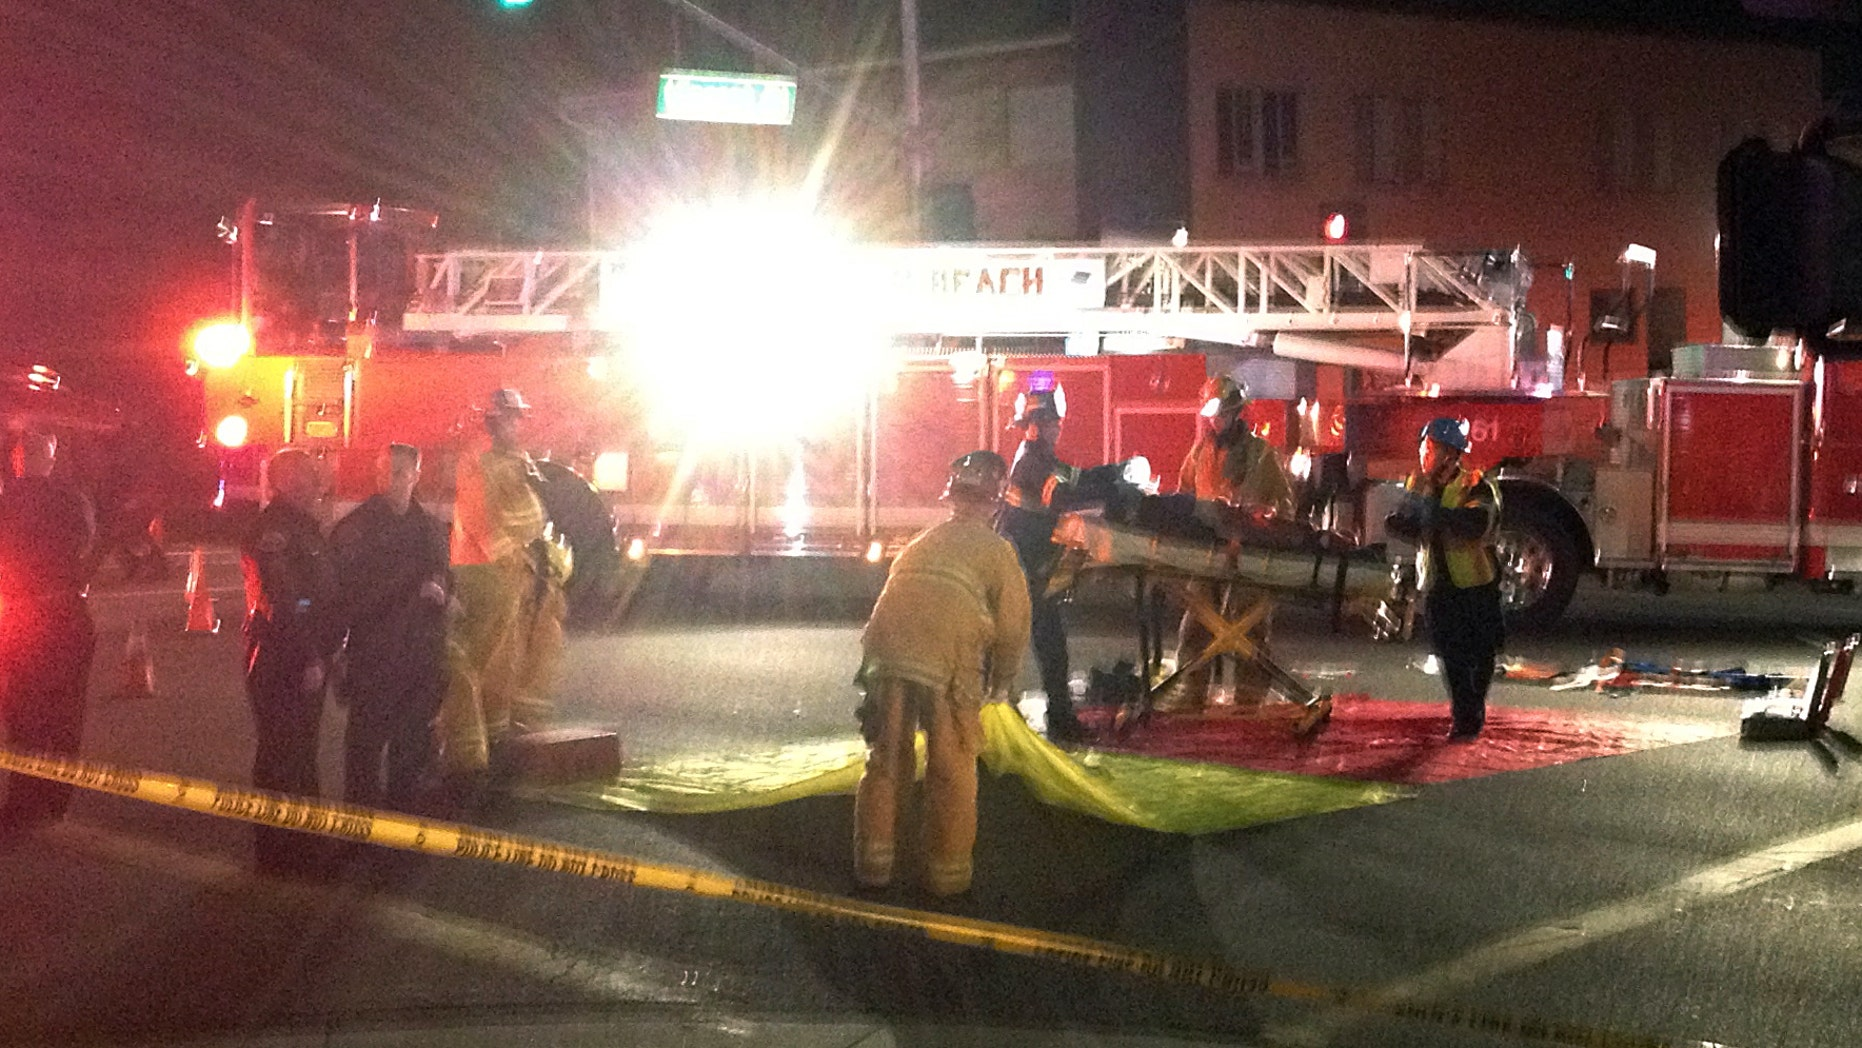 Dec. 17, 2014: n this photo provided by Mark Milutin, firefighters carry a victim from a triage area after a driver suspected of being intoxicated hit a group of pedestrians and another car outside a church as a Christmas service ended in the Los Angeles suburb of Redondo Beach, Calif.